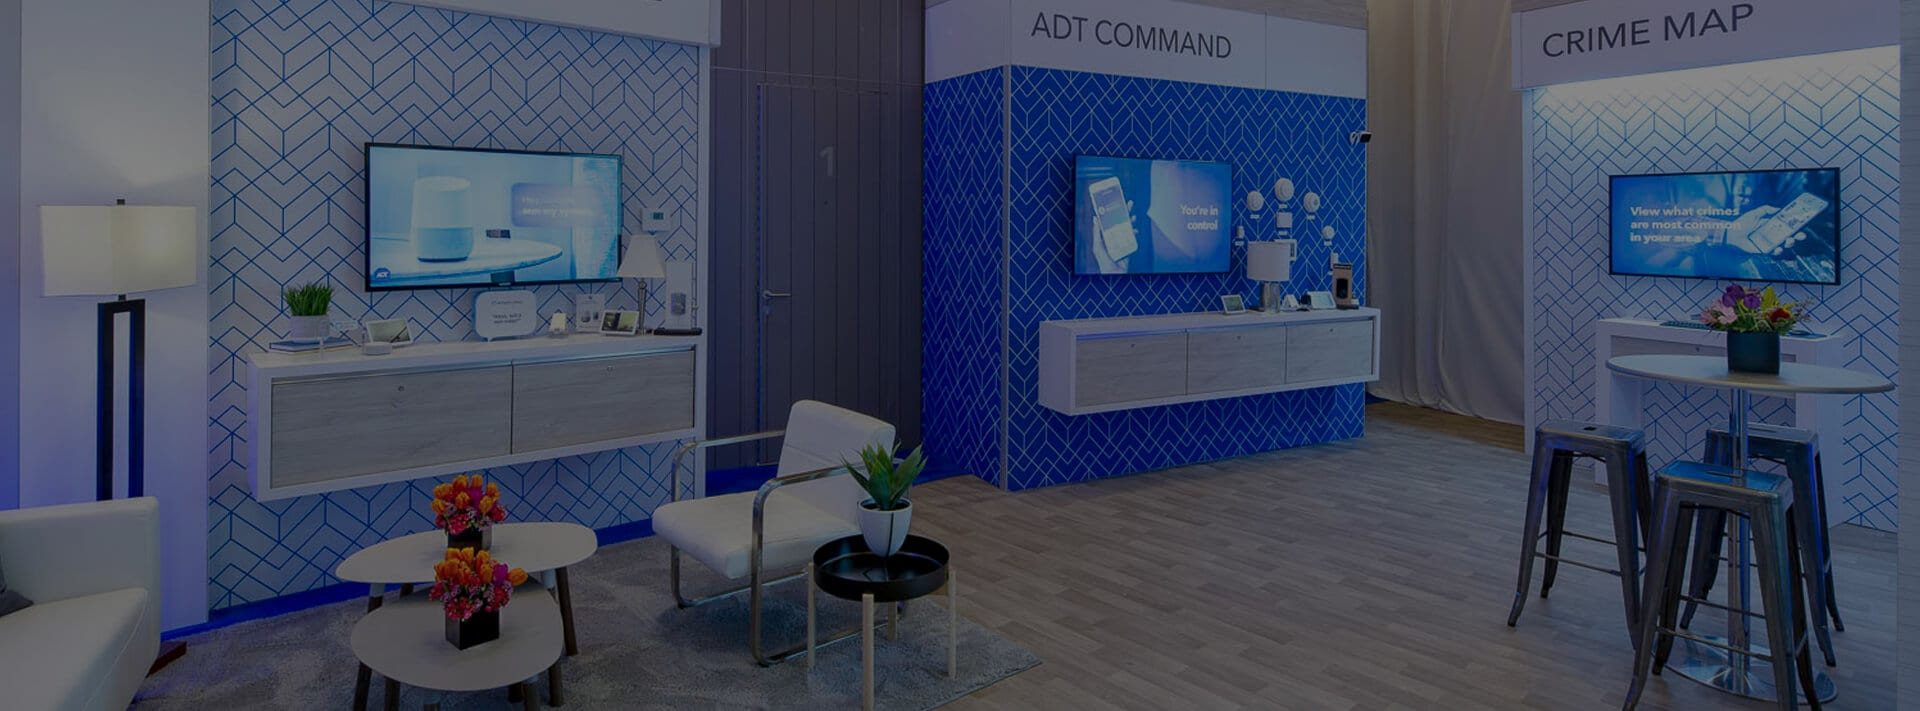 ADT x CES Resources